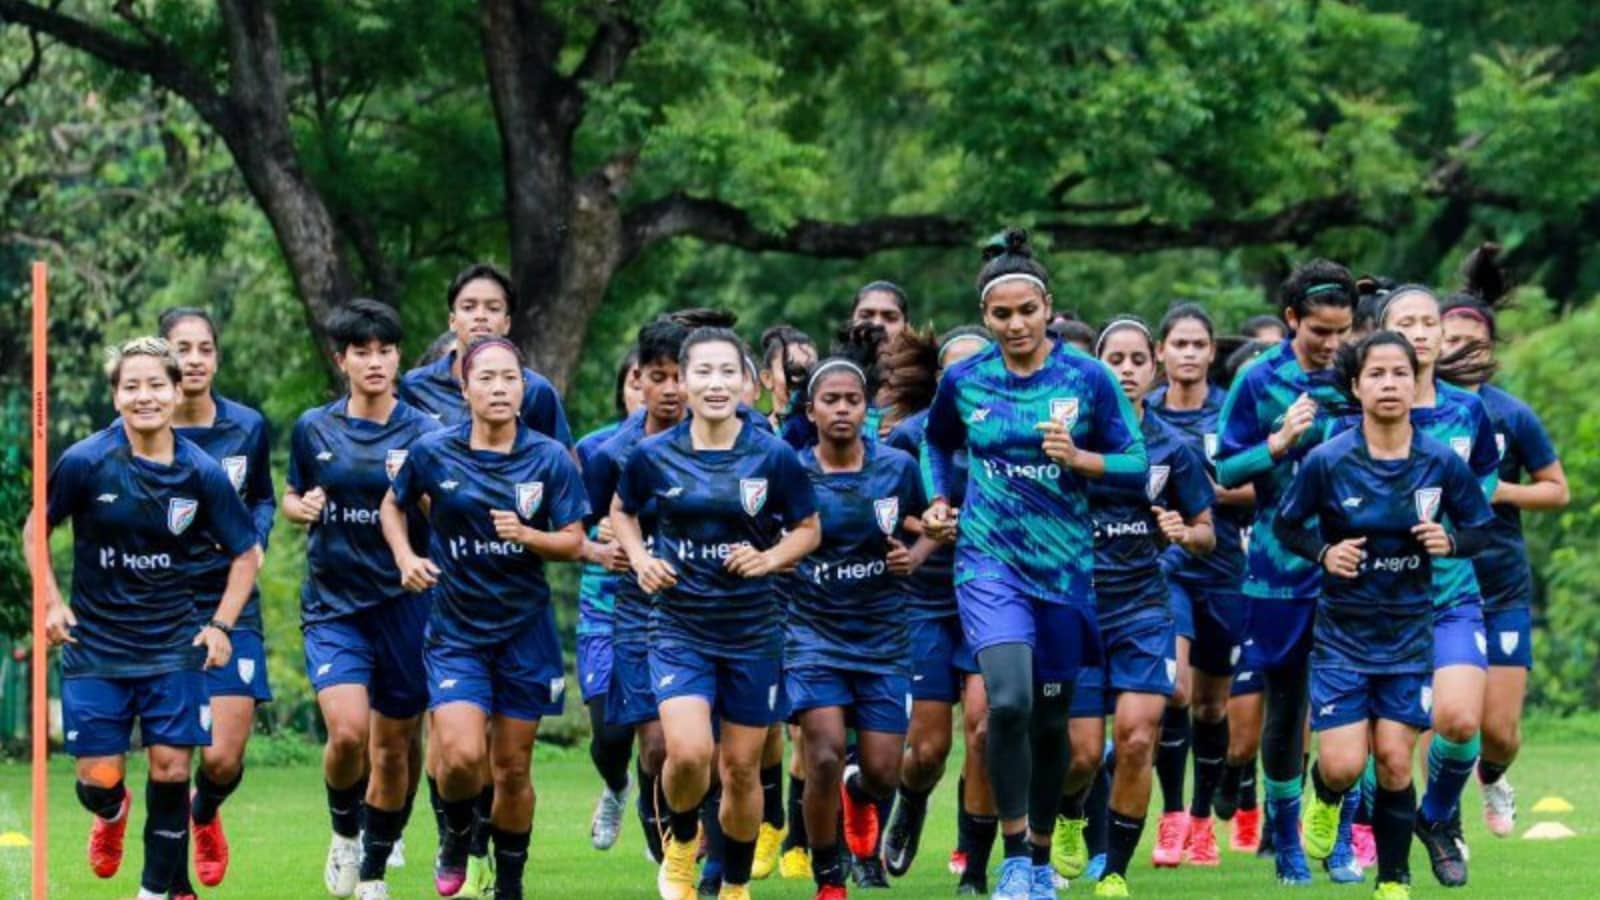 Indian Women's Football Team to Travel Abroad to Play International Matches in October